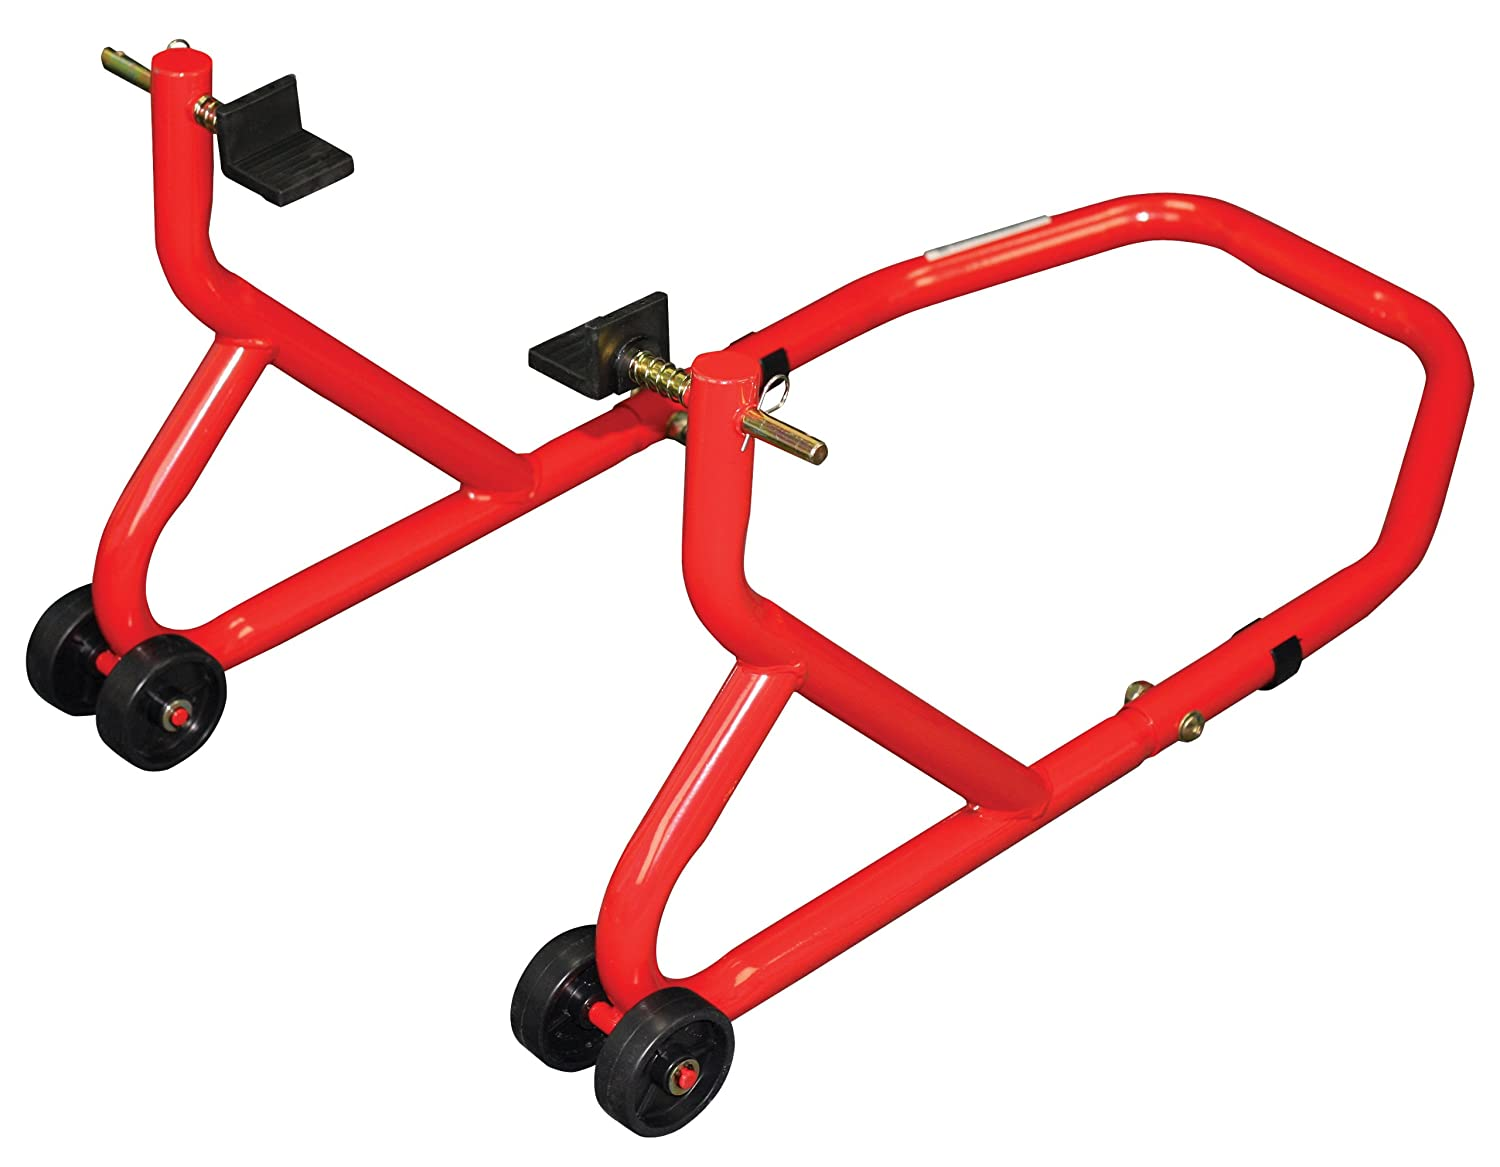 BIKE IT BikeTek Rear Motorcycle Paddock Stand Series 3 Red Heavy Duty